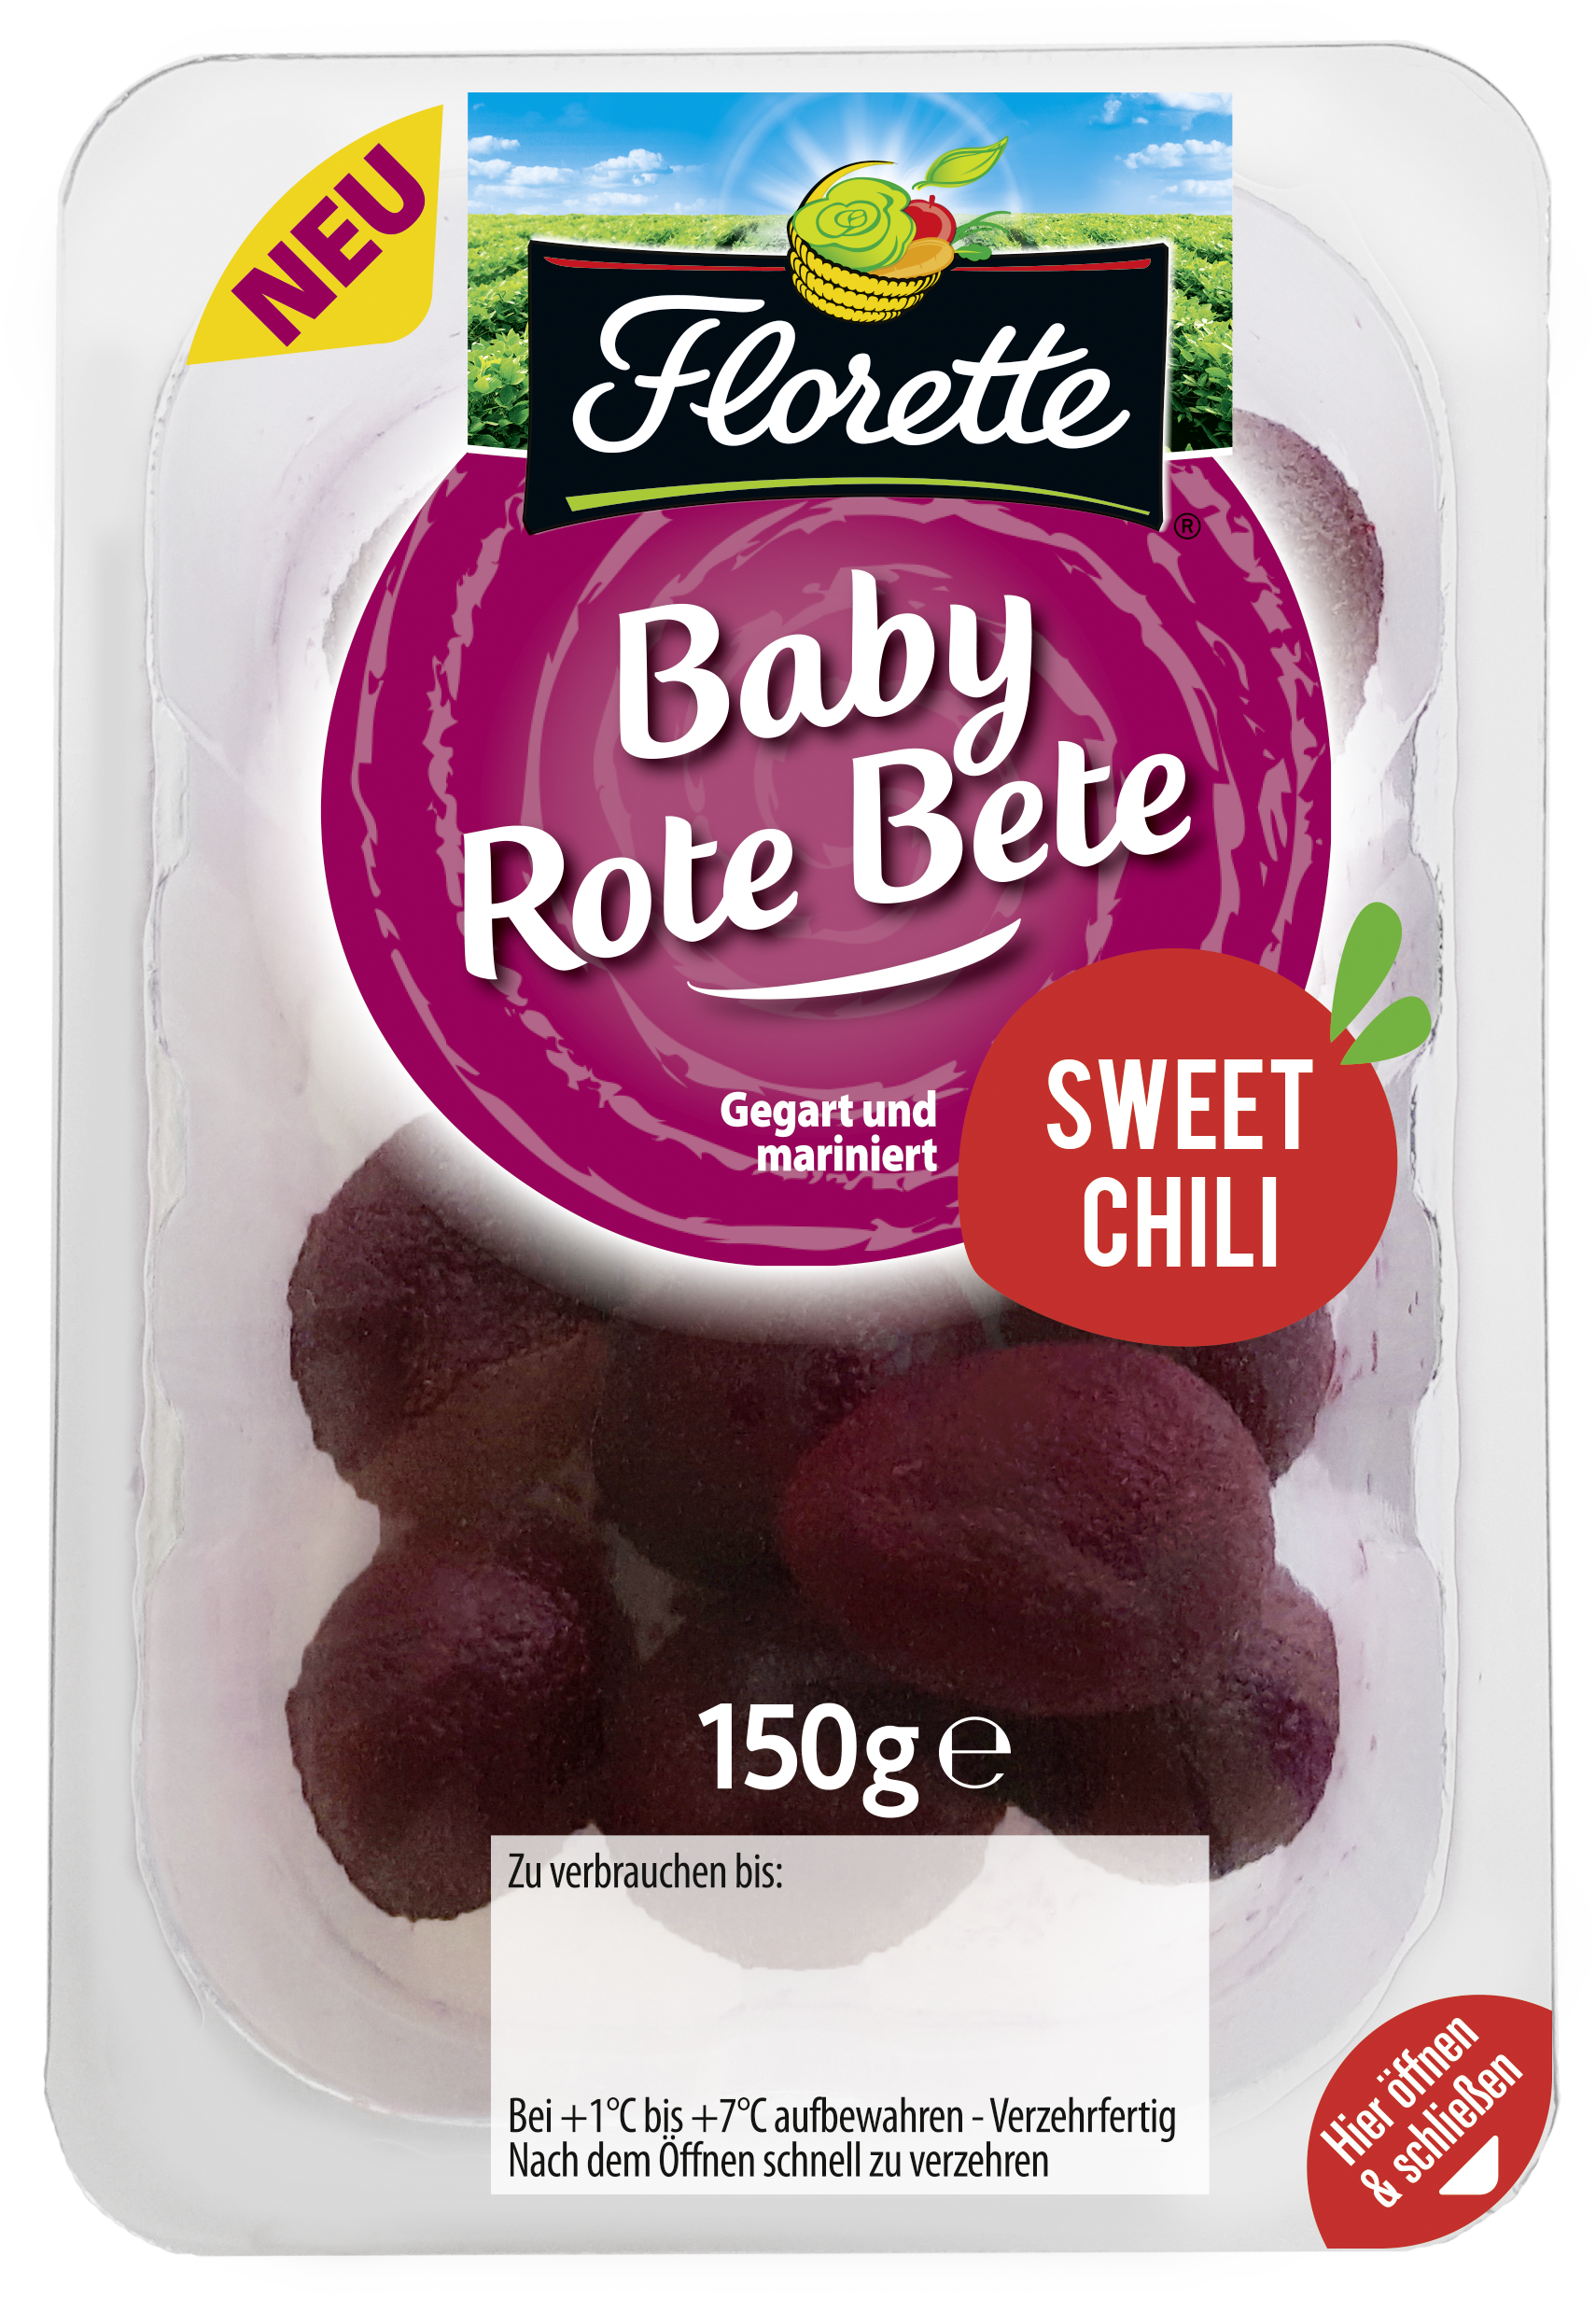 Baby Rote Bete SWEET CHILI HD